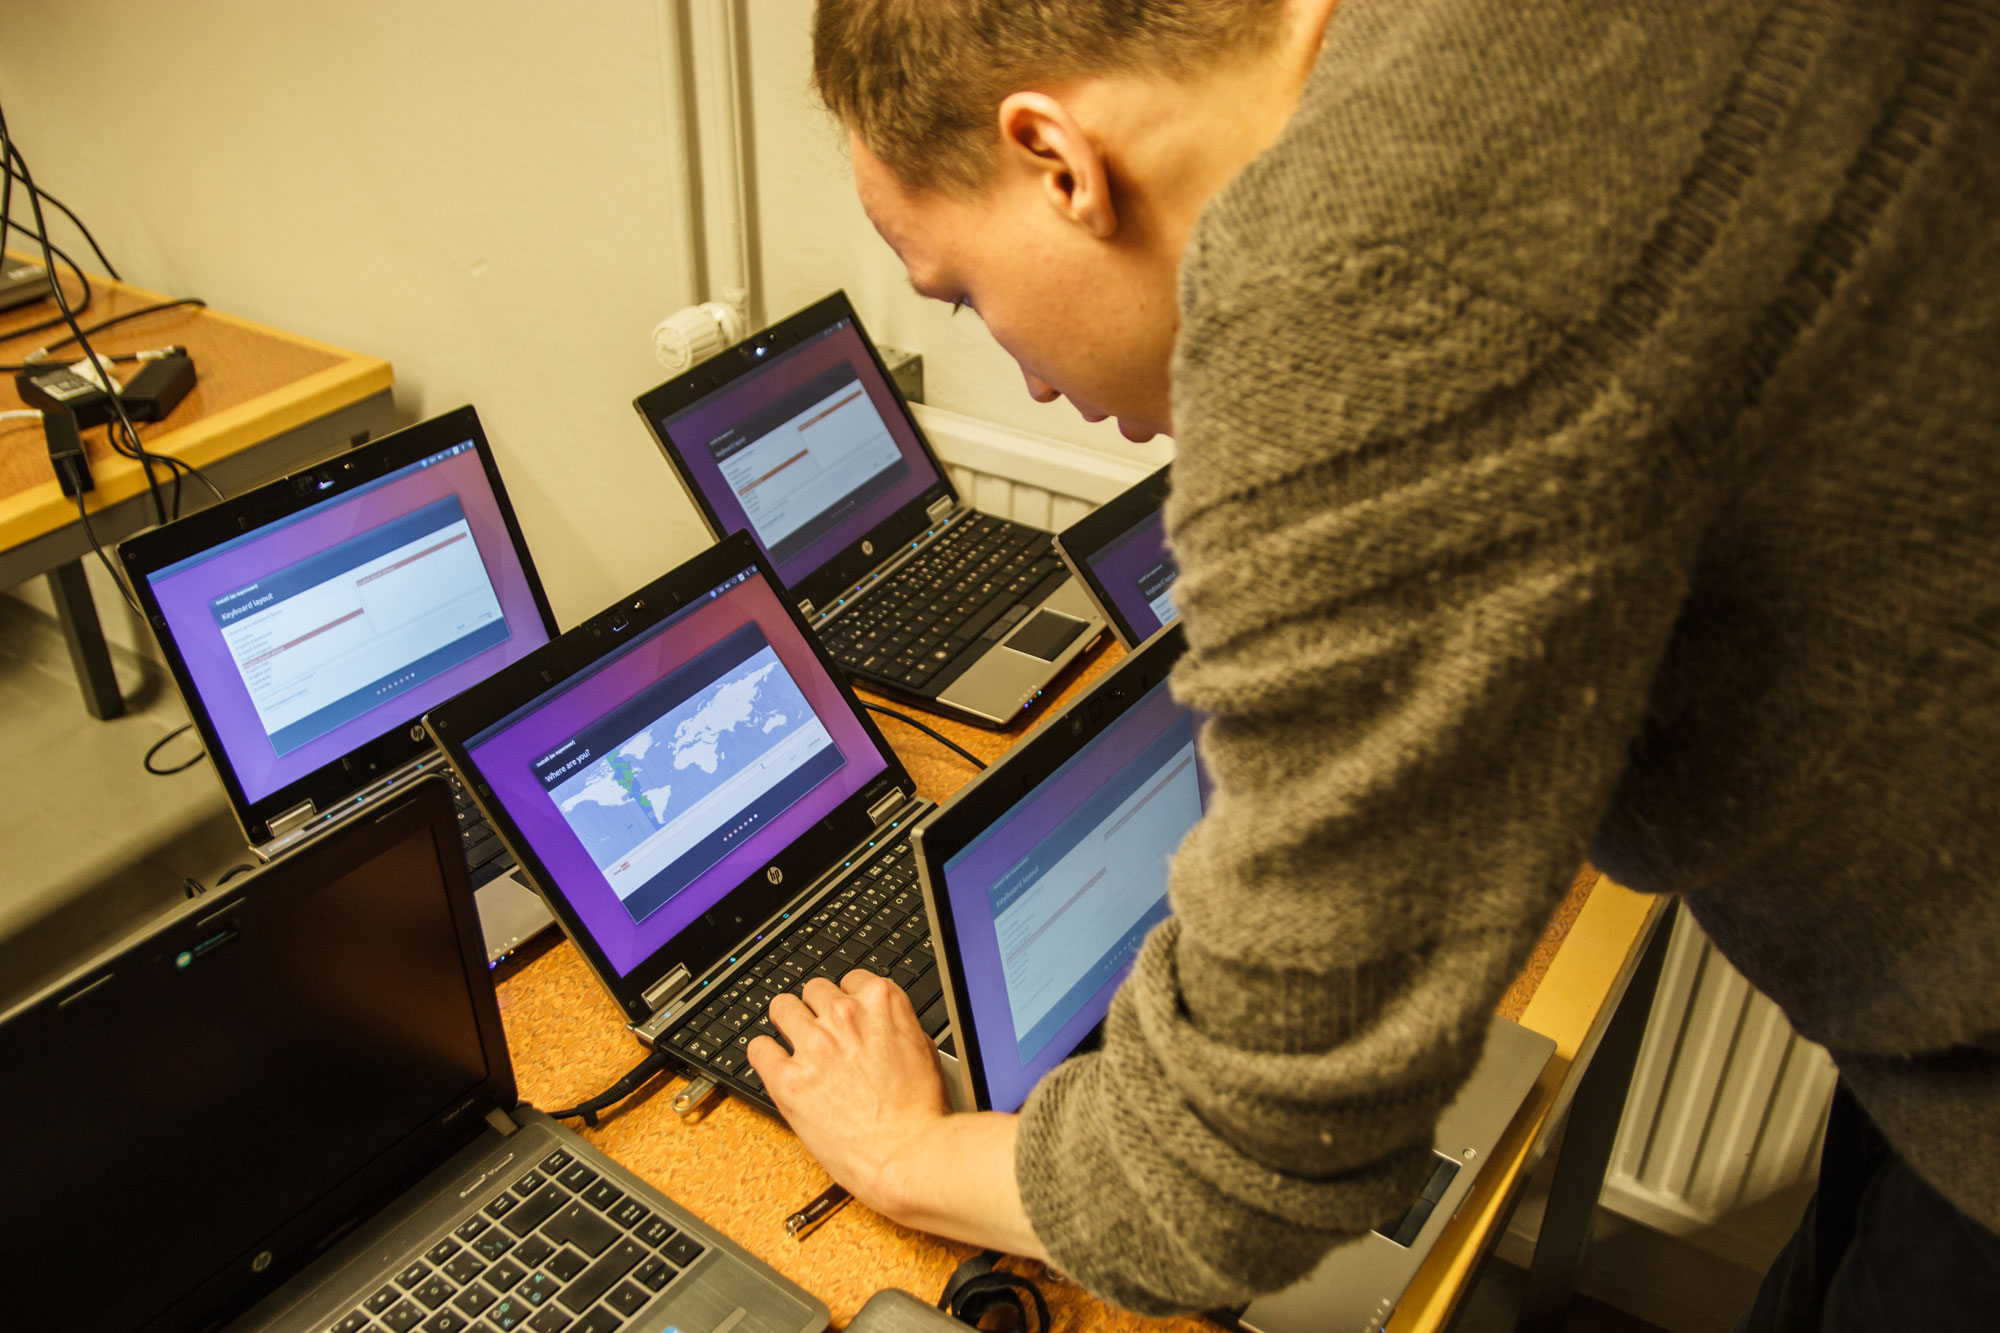 Hampus installing Ubuntu on the machines.